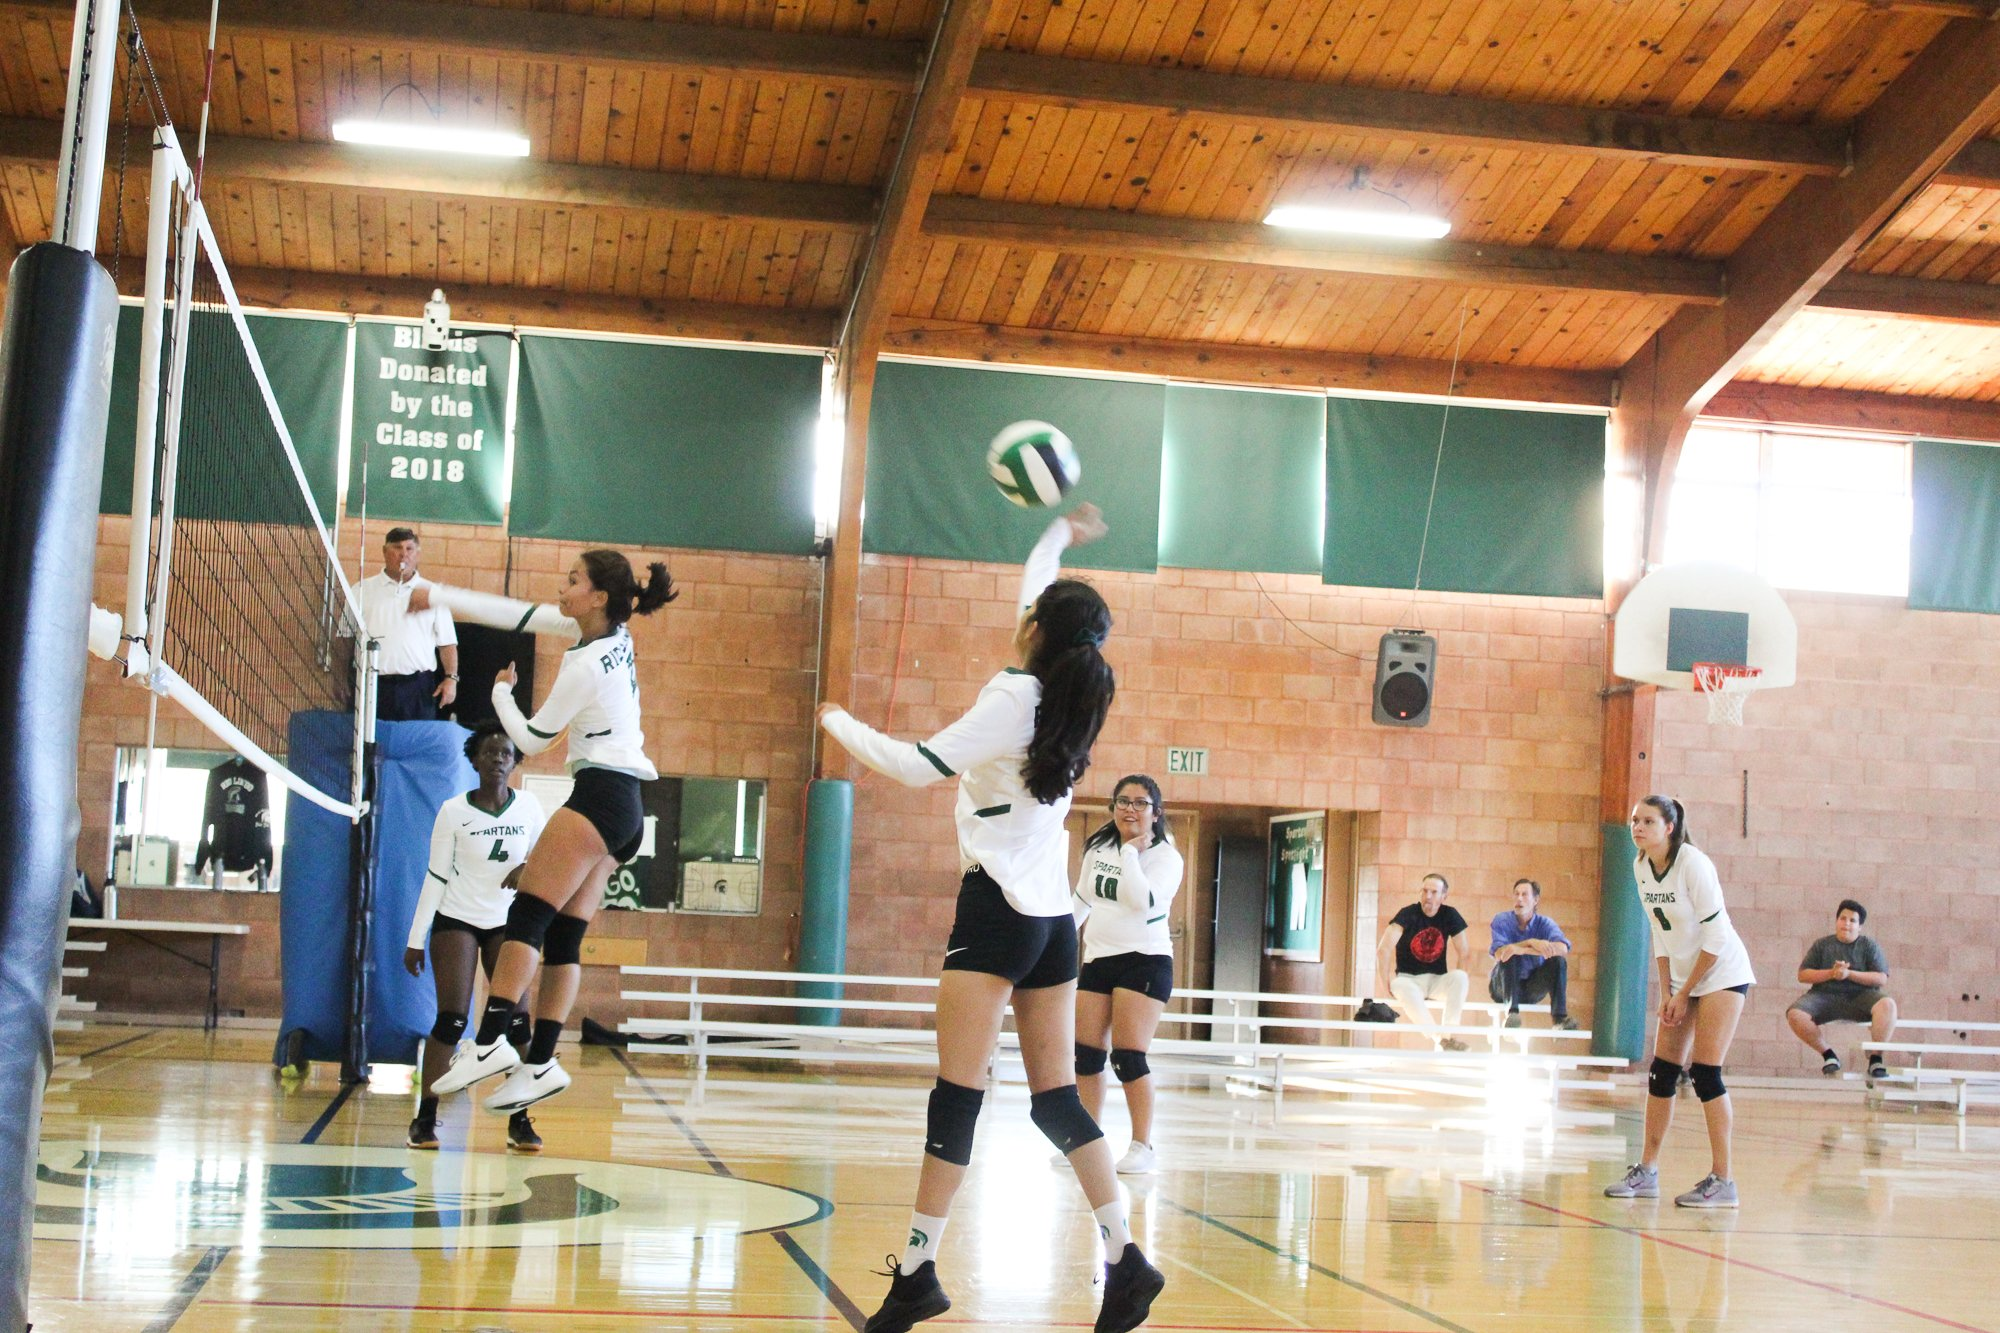 spiking the volleyball